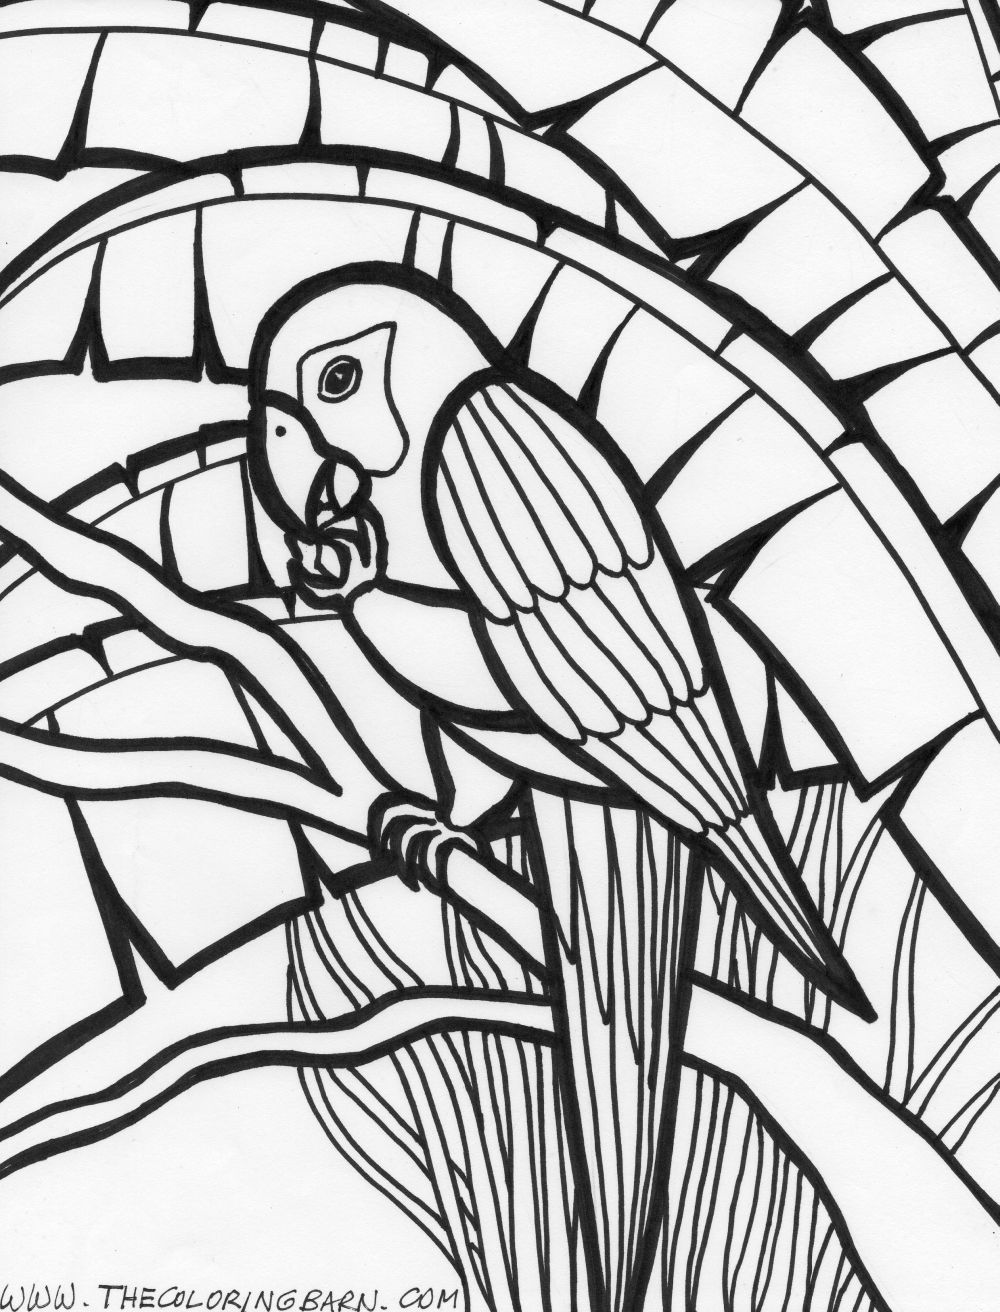 Rainforest Creatures Colouring Pages Free The Coloring Barn